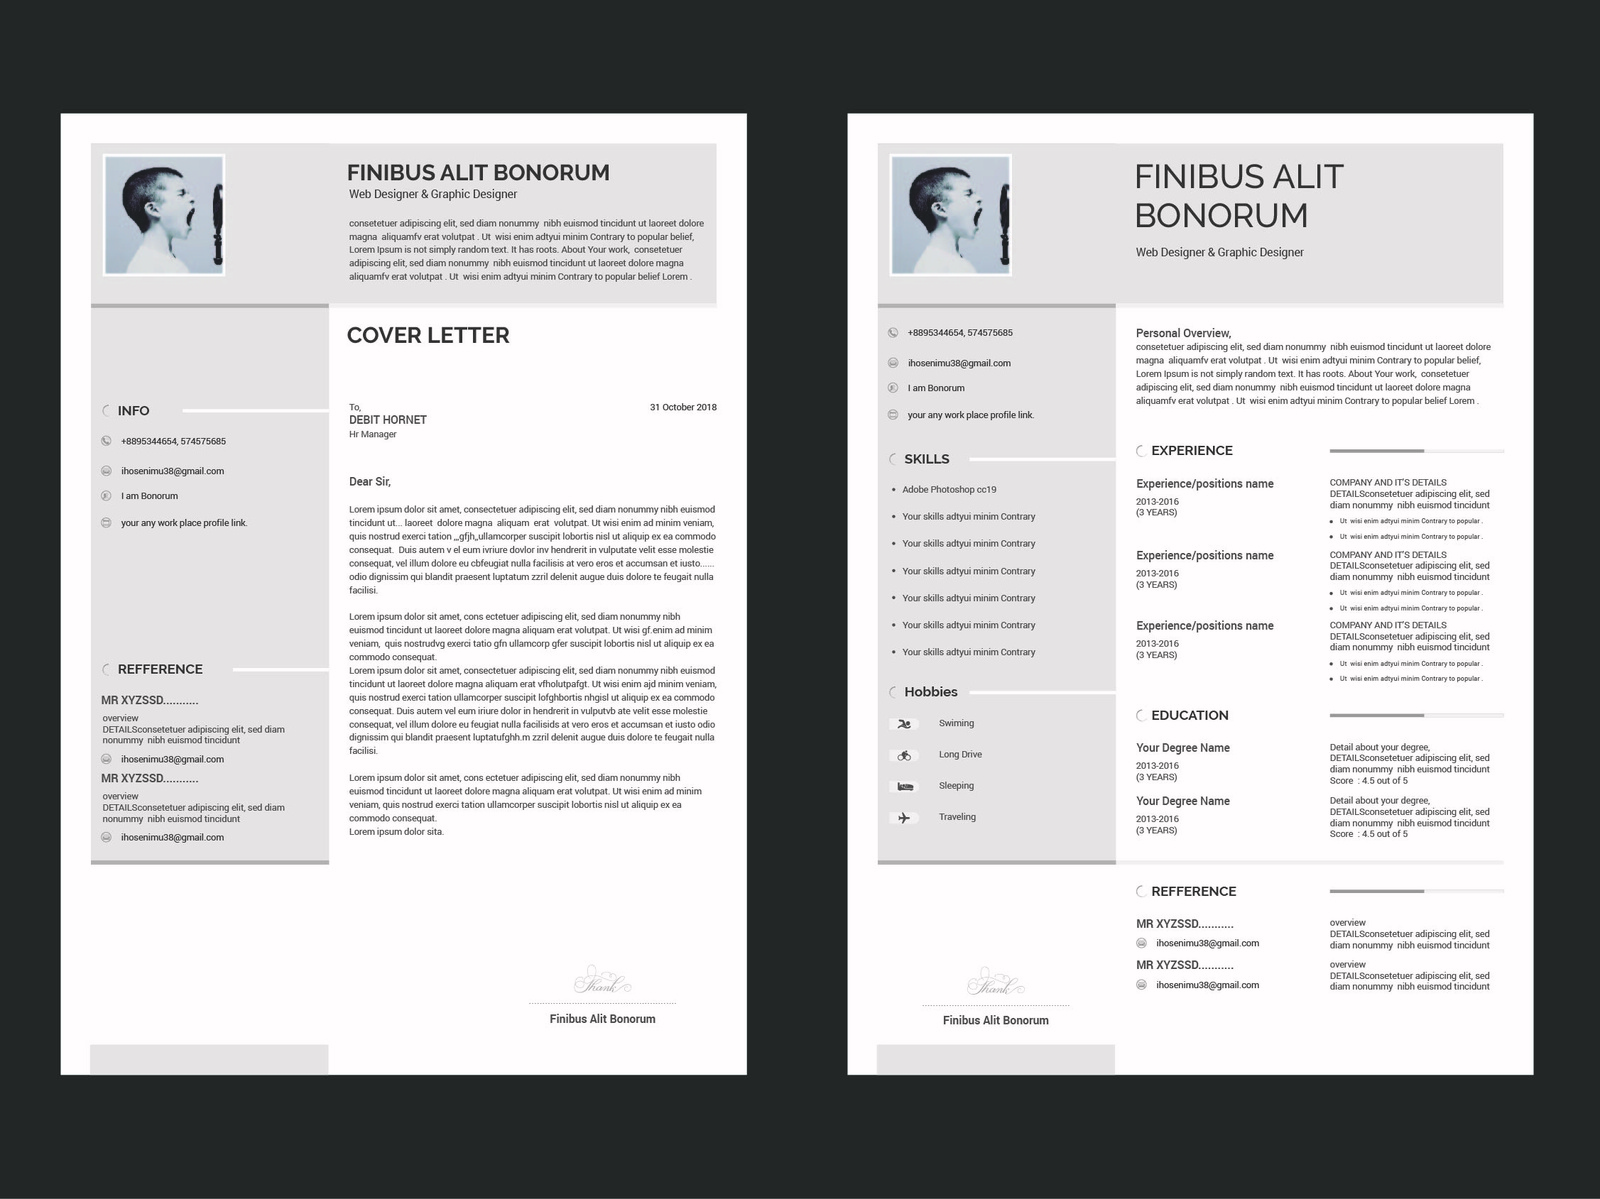 free resume cover letter design template 2018 by imran hasan imu